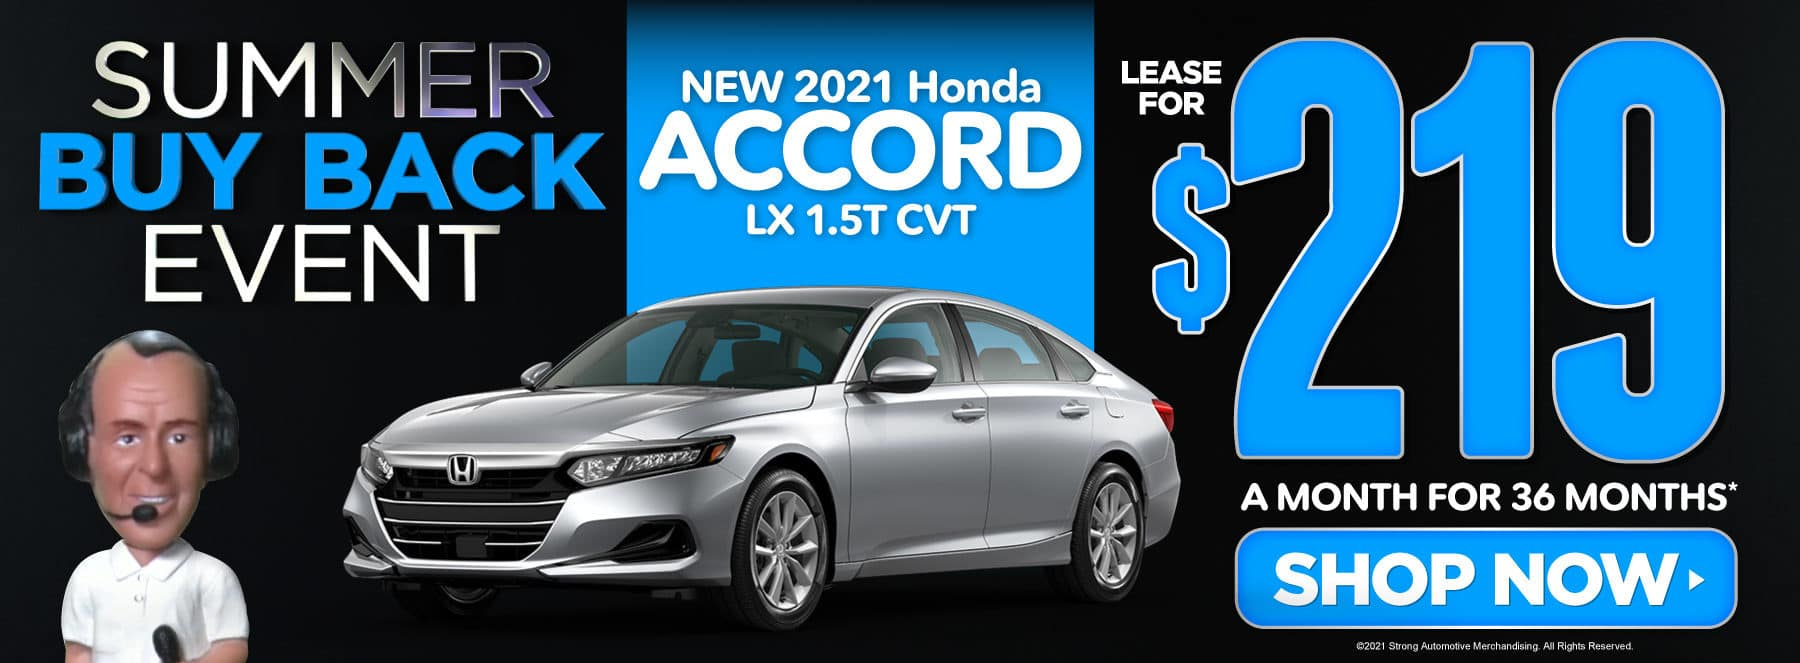 New 2021 Honda Accord - Lease for $219 a month - Shop Now